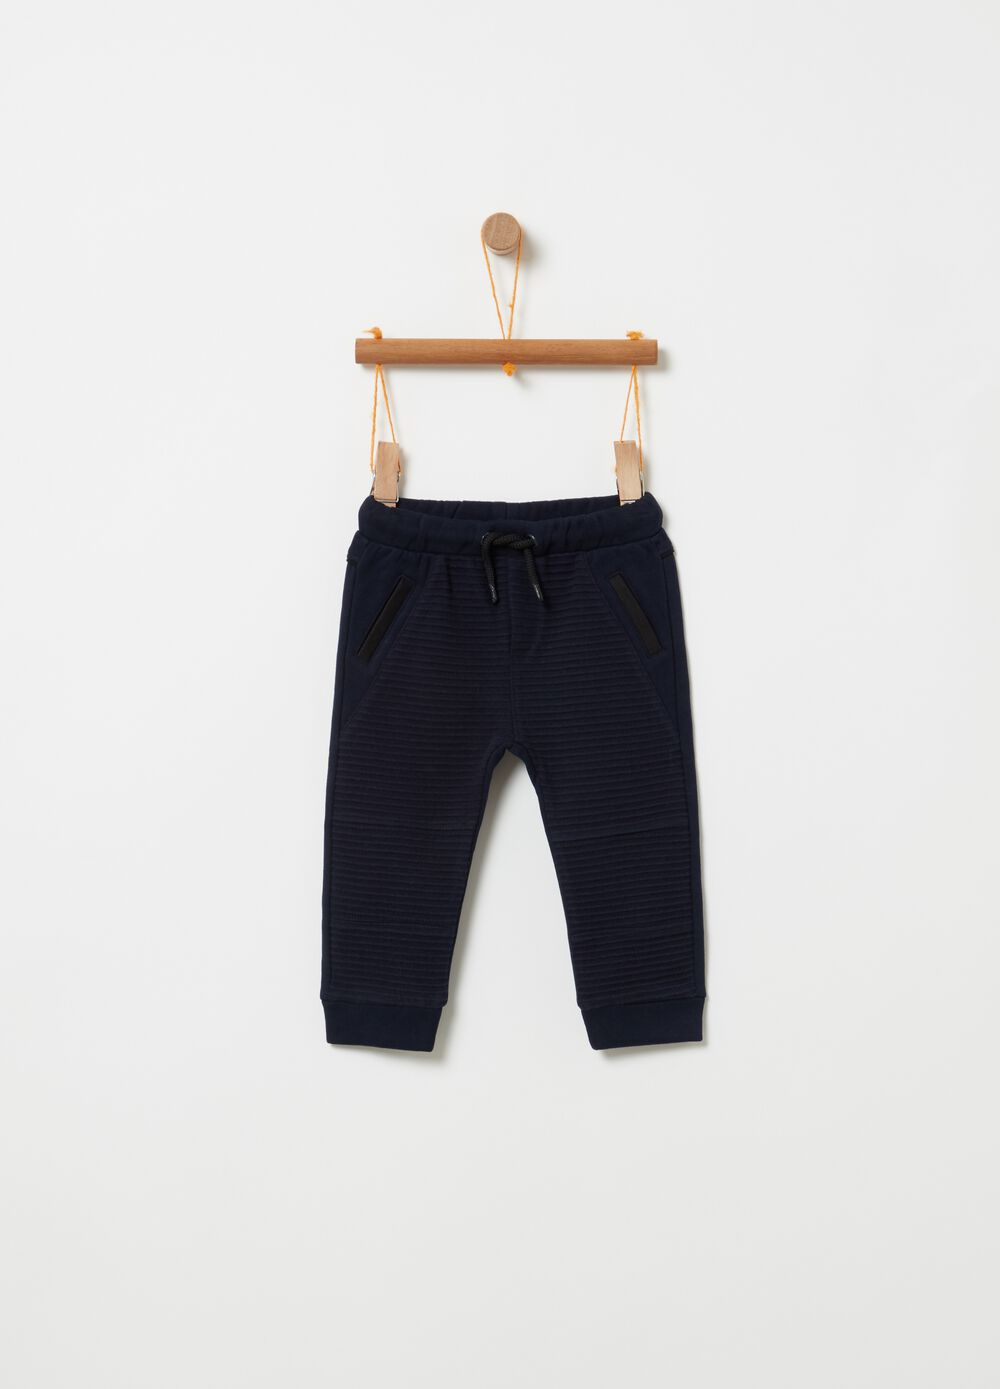 100% cotton trousers with ribbed weave